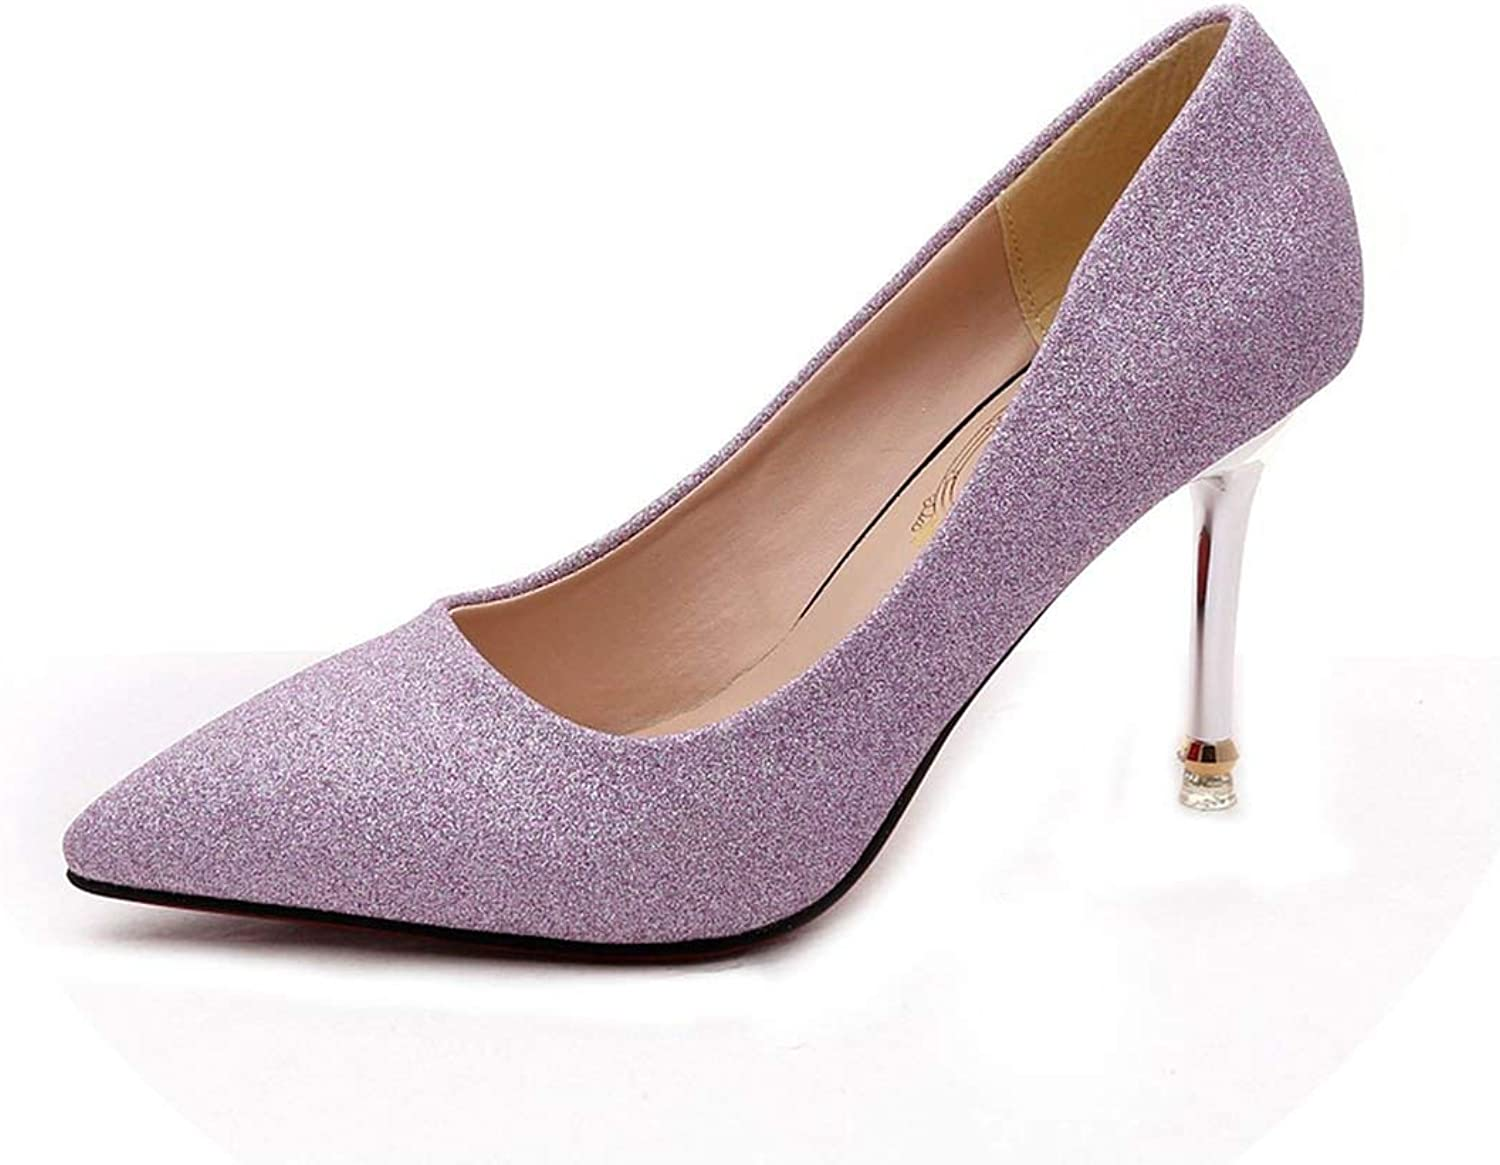 Women shoes Fashion Pointed Toe Pumps Patent Leather High Heels,Purple,4.5